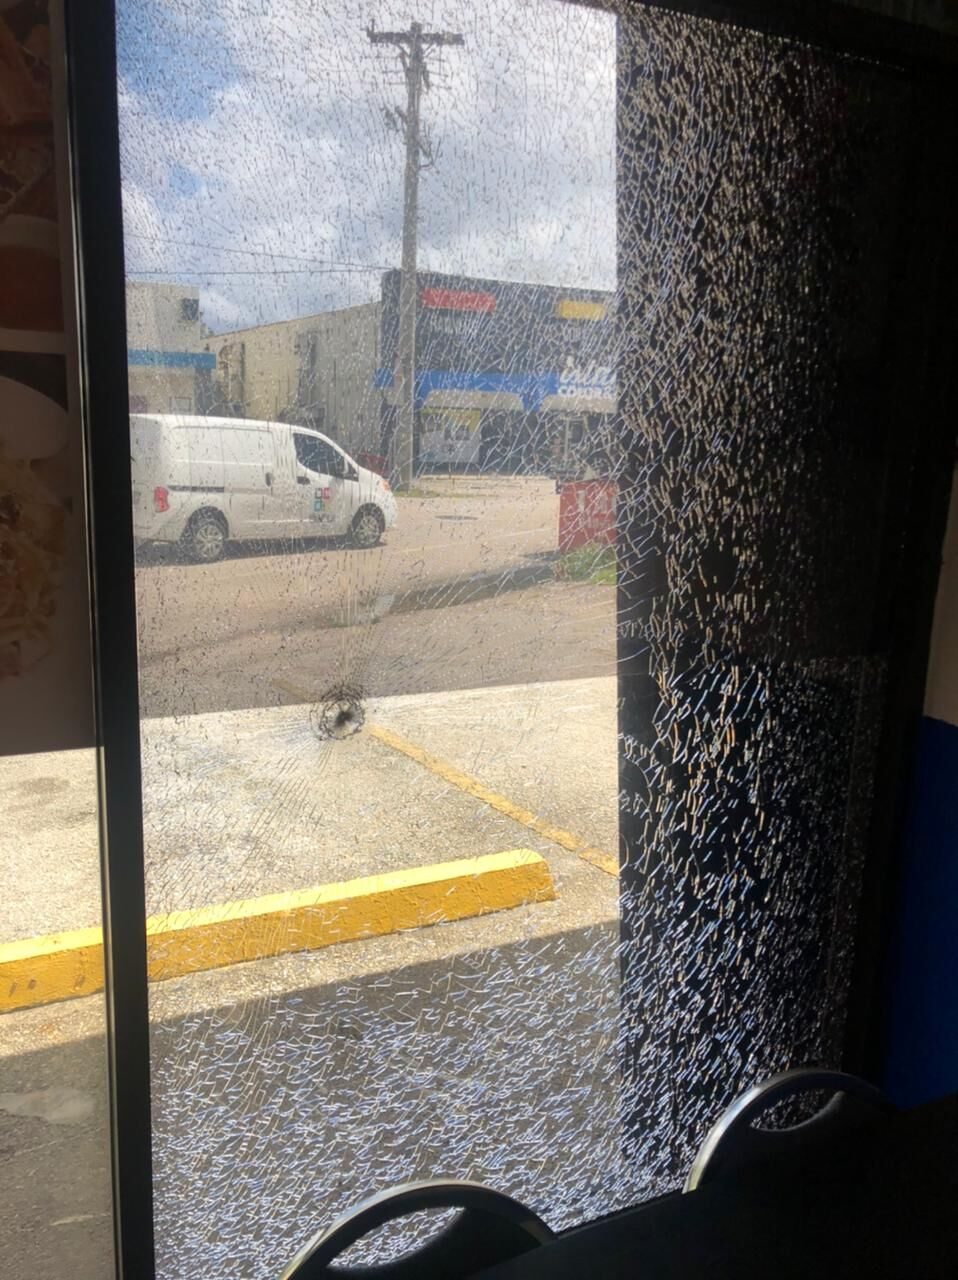 Witnesses say shots fired at Tamuning building